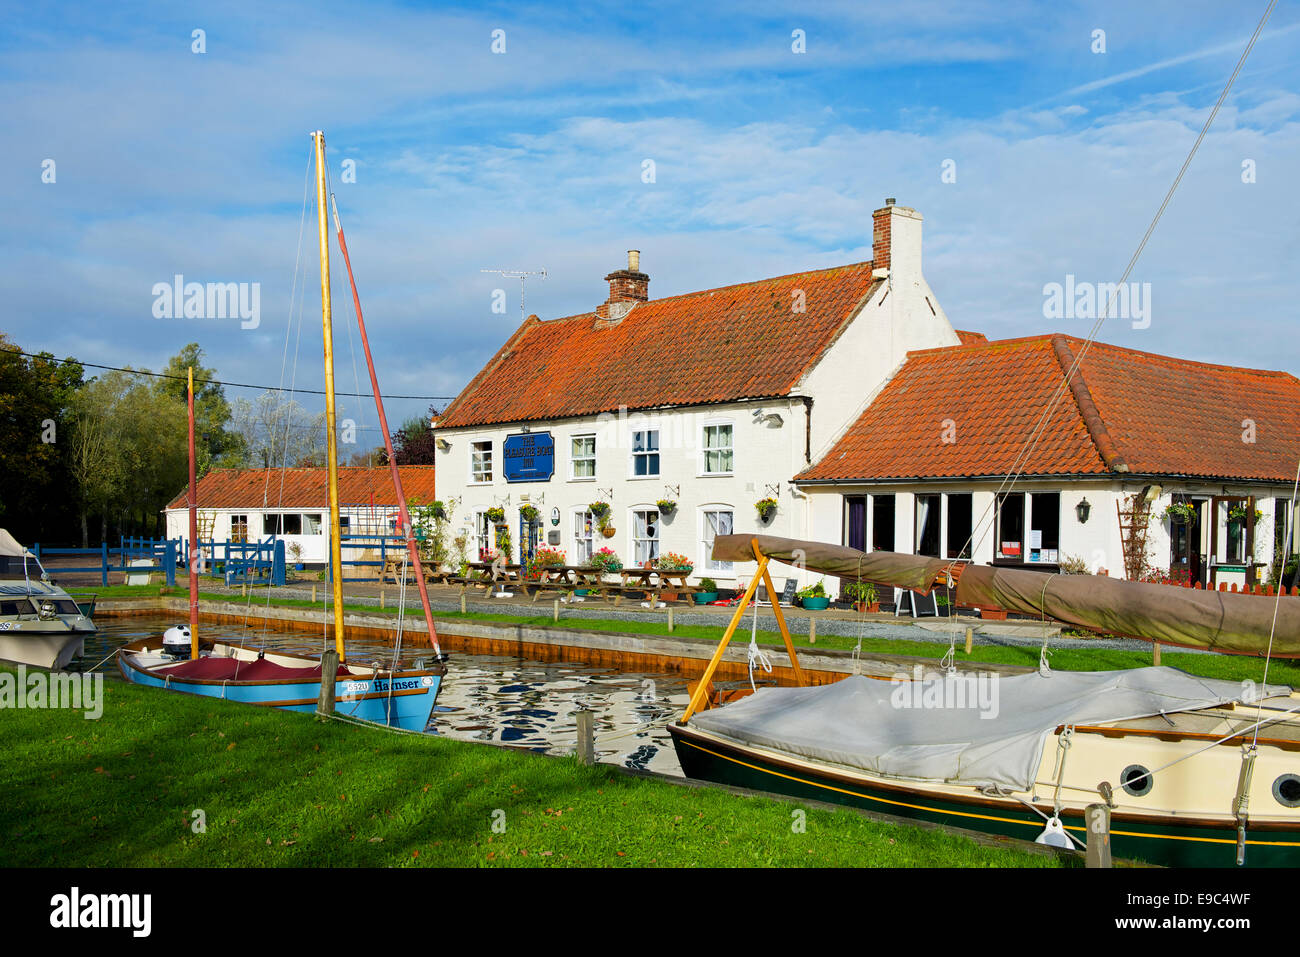 The Pleasure Boat Inn, Hickling Broad, Hickling, Norfolk, England UK - Stock Image